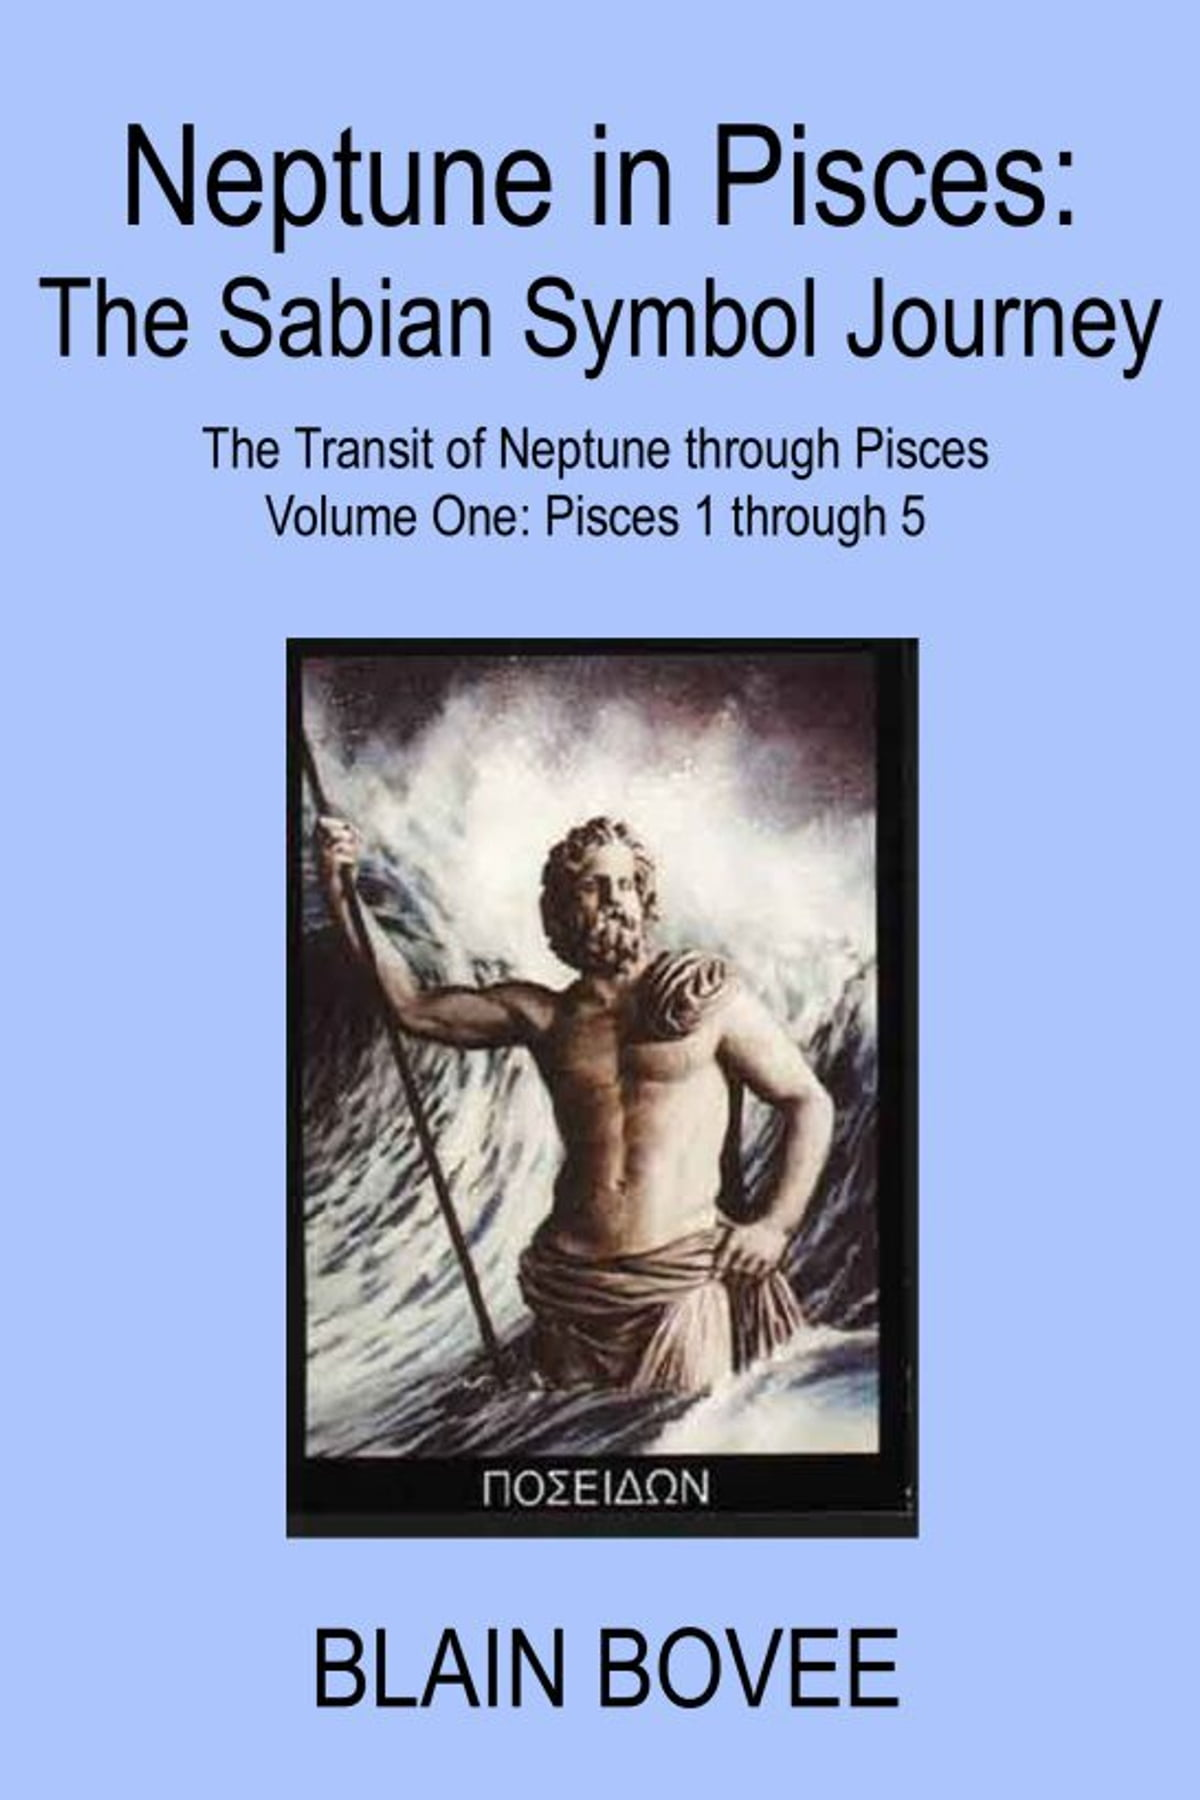 Neptune in pisces the sabian symbol journey the transit of neptune in pisces the sabian symbol journey the transit of neptune through pisces volume one pisces 1 through 5 ebook by blain bovee 9781301393121 biocorpaavc Image collections